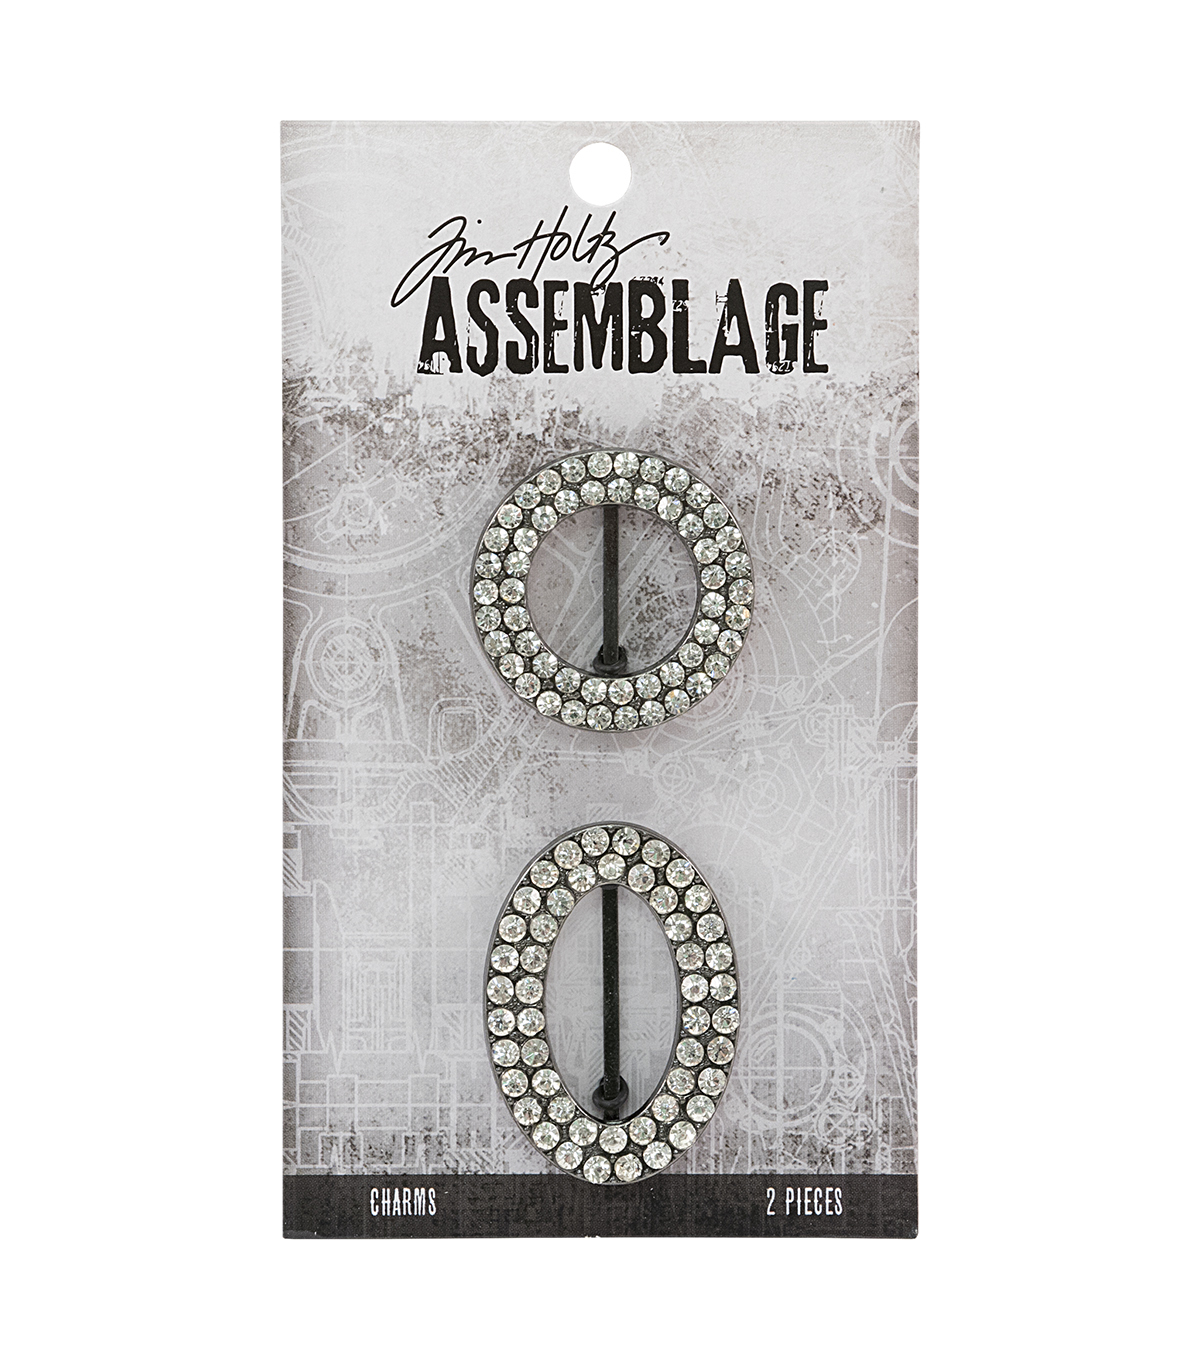 Tim Holtz Assemblage 2 Pack Round & Oval Crystal Frame Charms